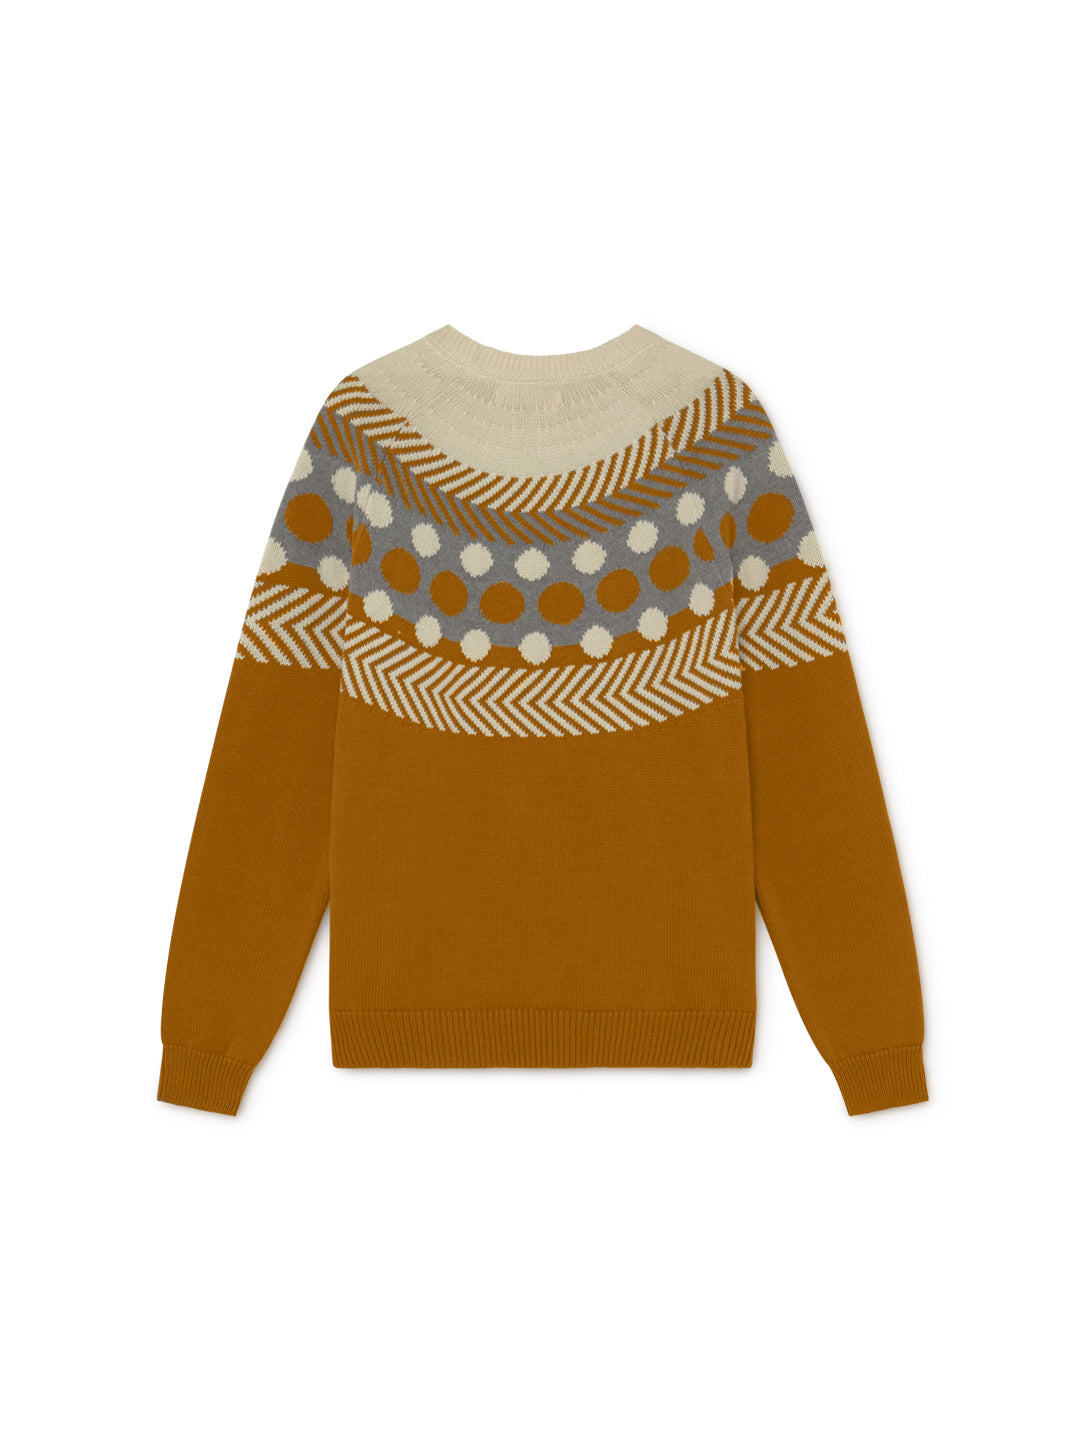 TWOTHIRDS Womens Knit: Samar - Terracotta back